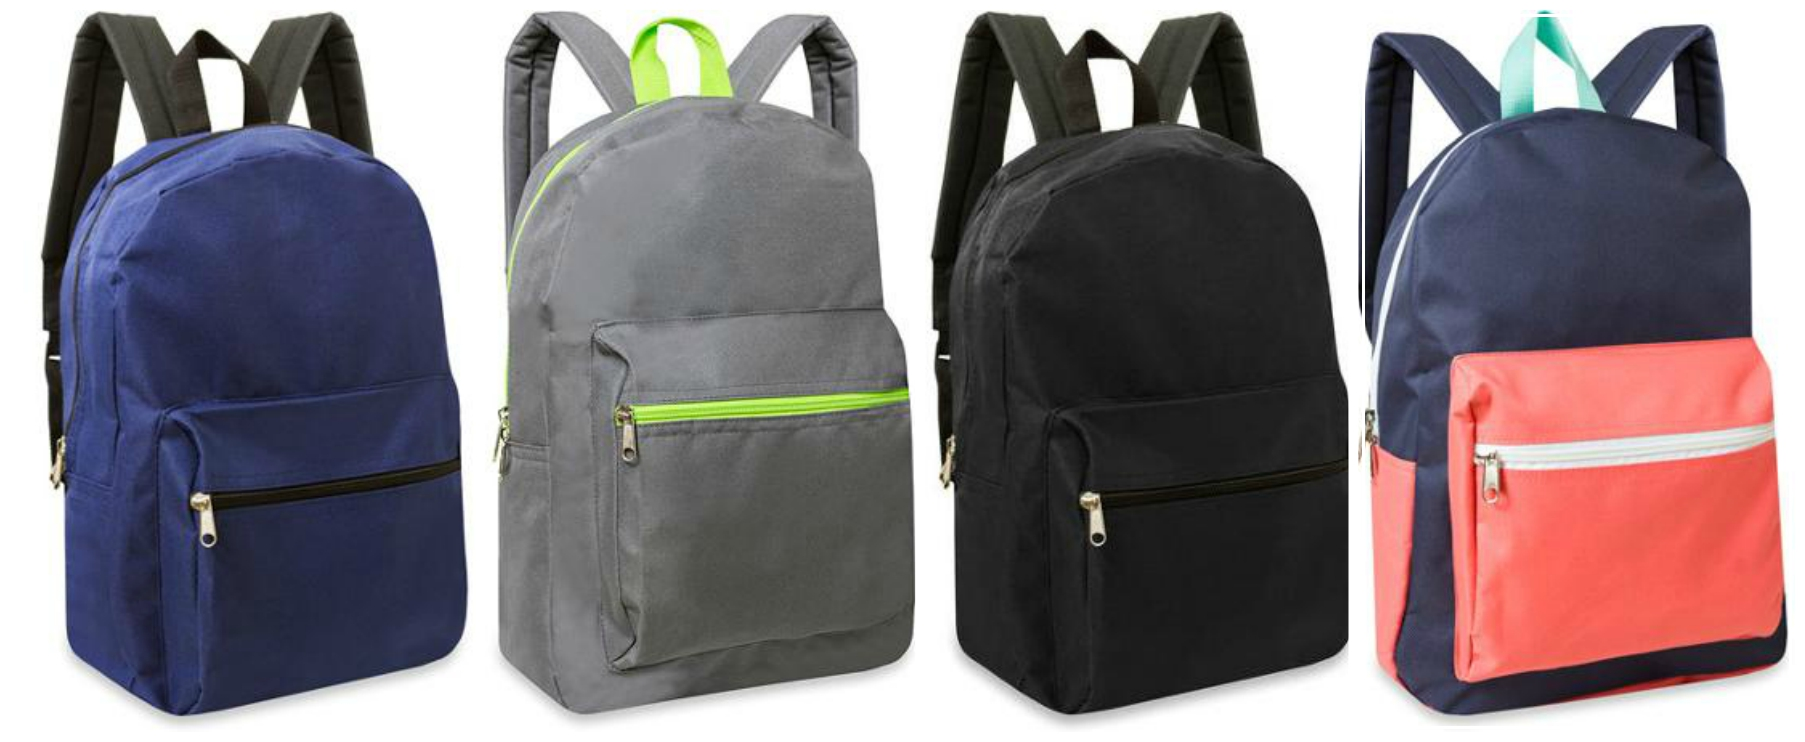 What Stores Sell Jansport Backpacks ftmSYe4n